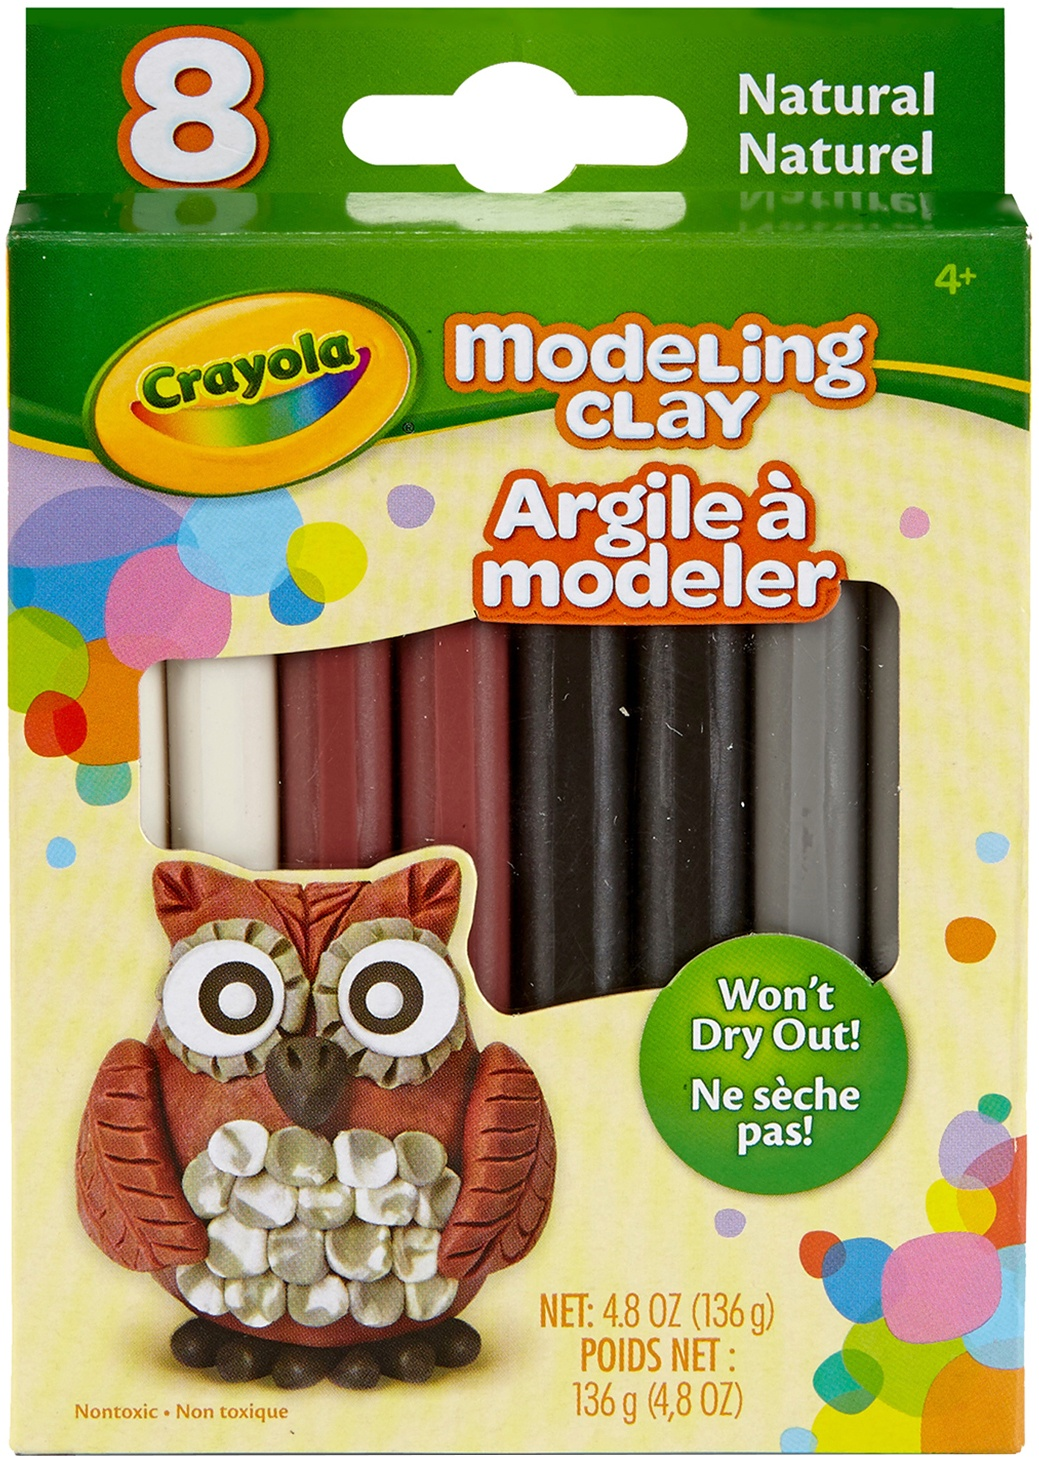 Crayola-Modeling-Clay-6oz-8-Pkg-Natural